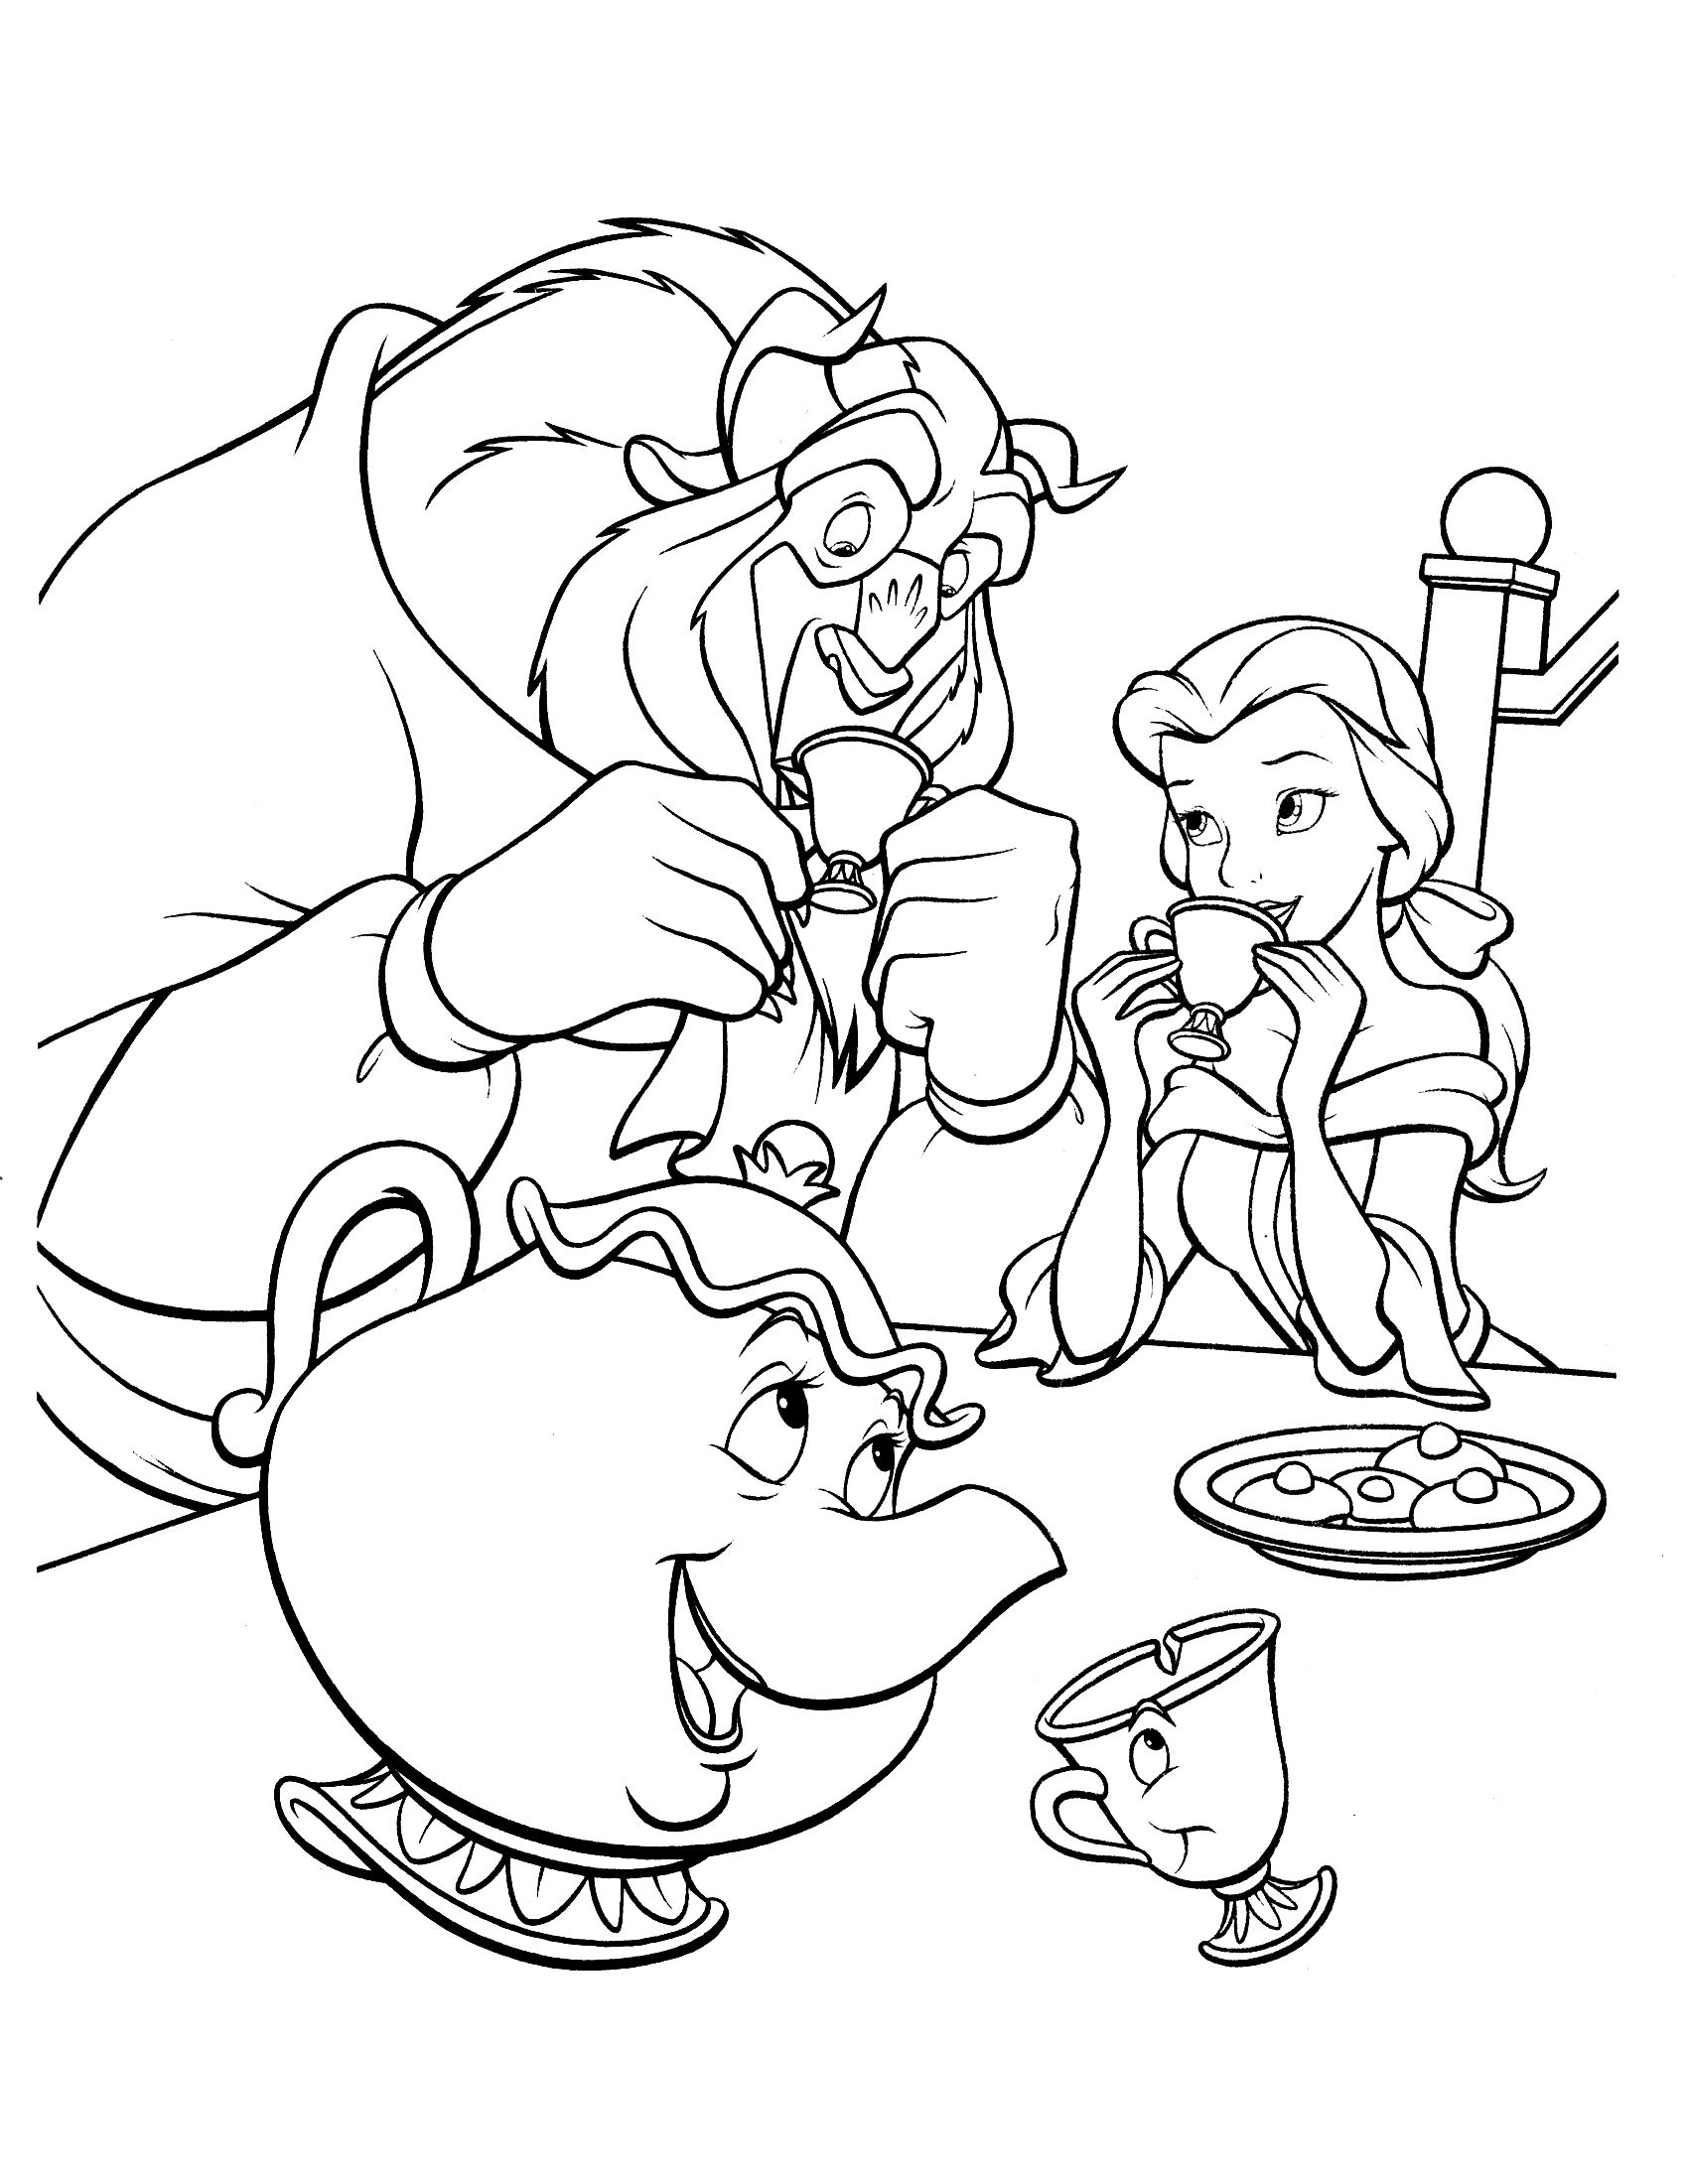 beauty and the beast colouring page beauty and the beast dancing coloring pages for kids the page beauty and beast colouring